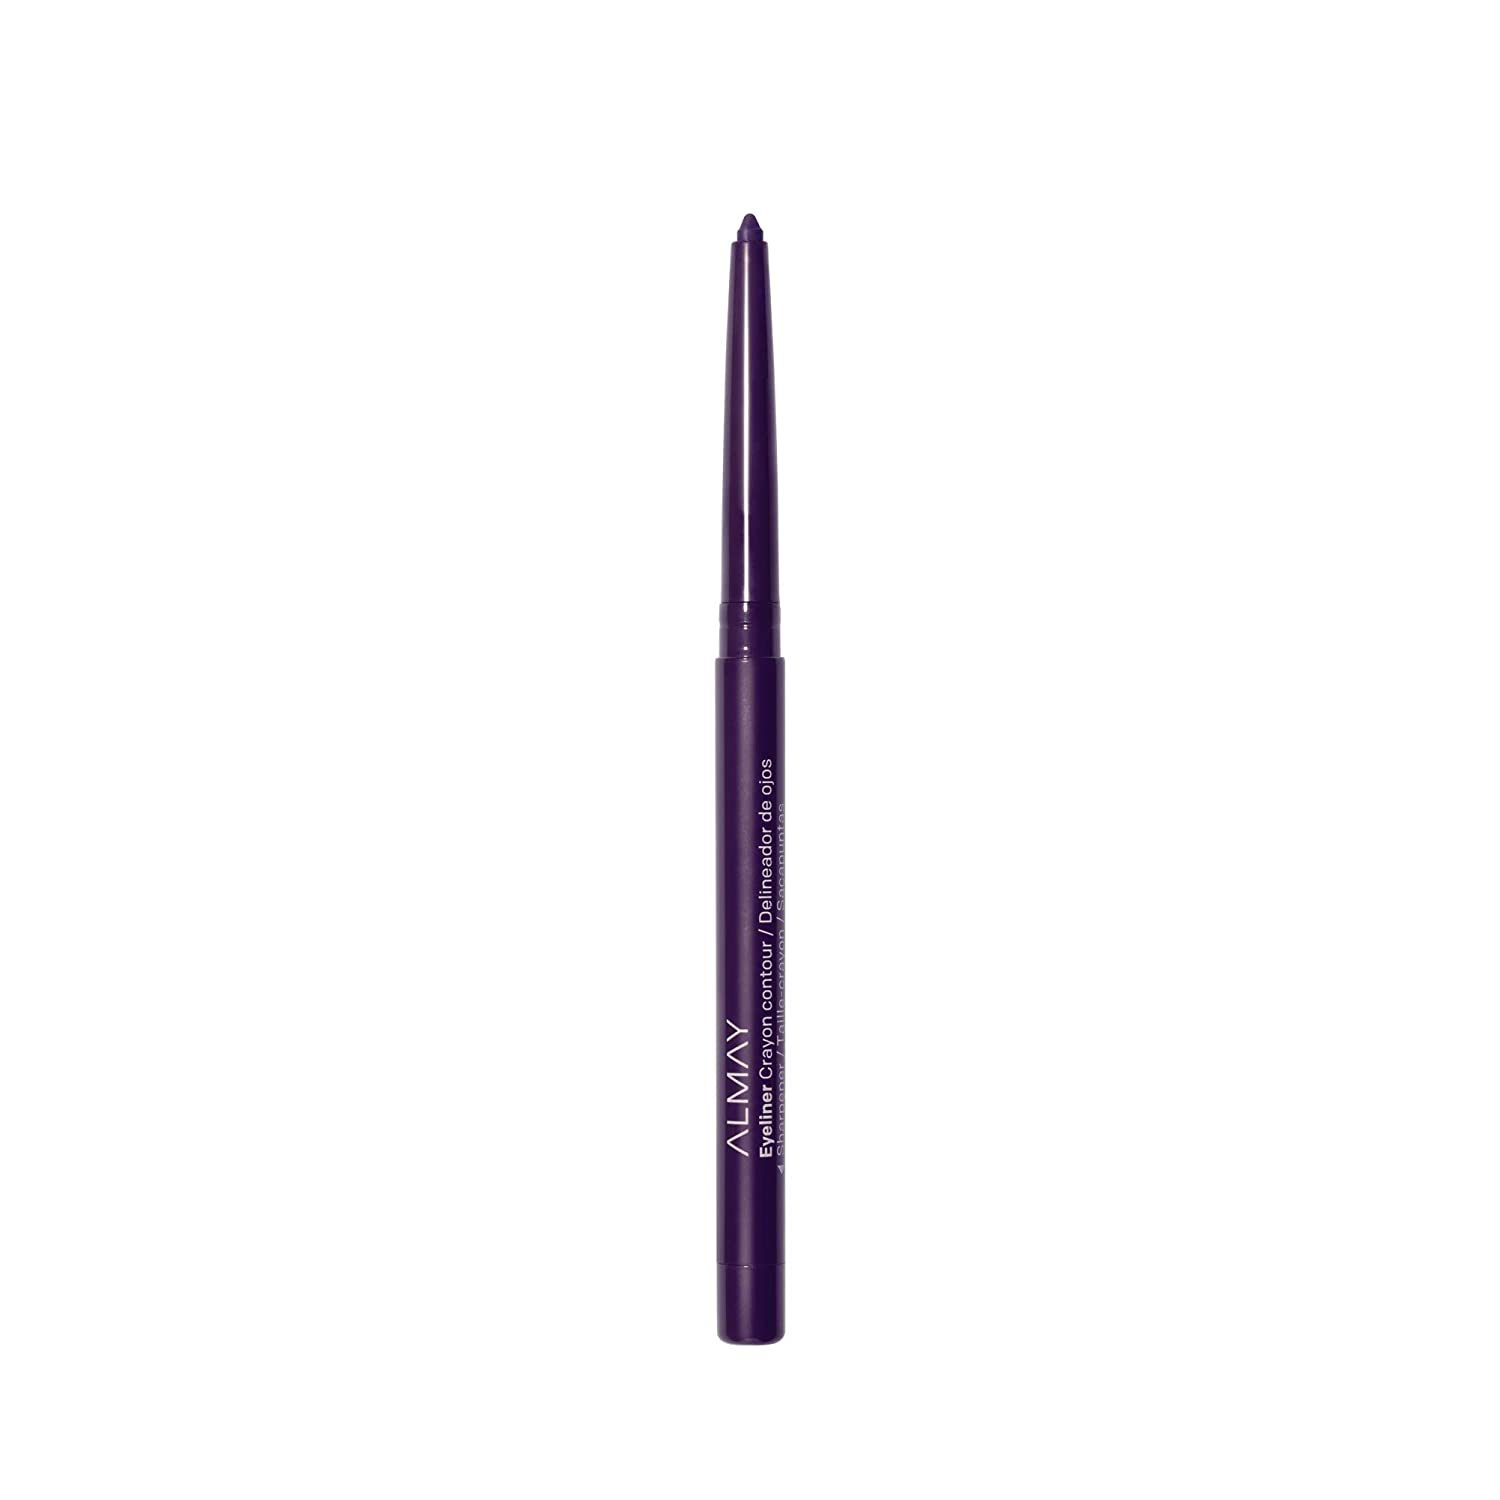 Almay Eyeliner Pencil, Hypoallergenic, Cruelty Free, Oil Free, Fragrance Free, Ophthalmologist Tested, Long Wearing and Water Resistant, with Built in Sharpener